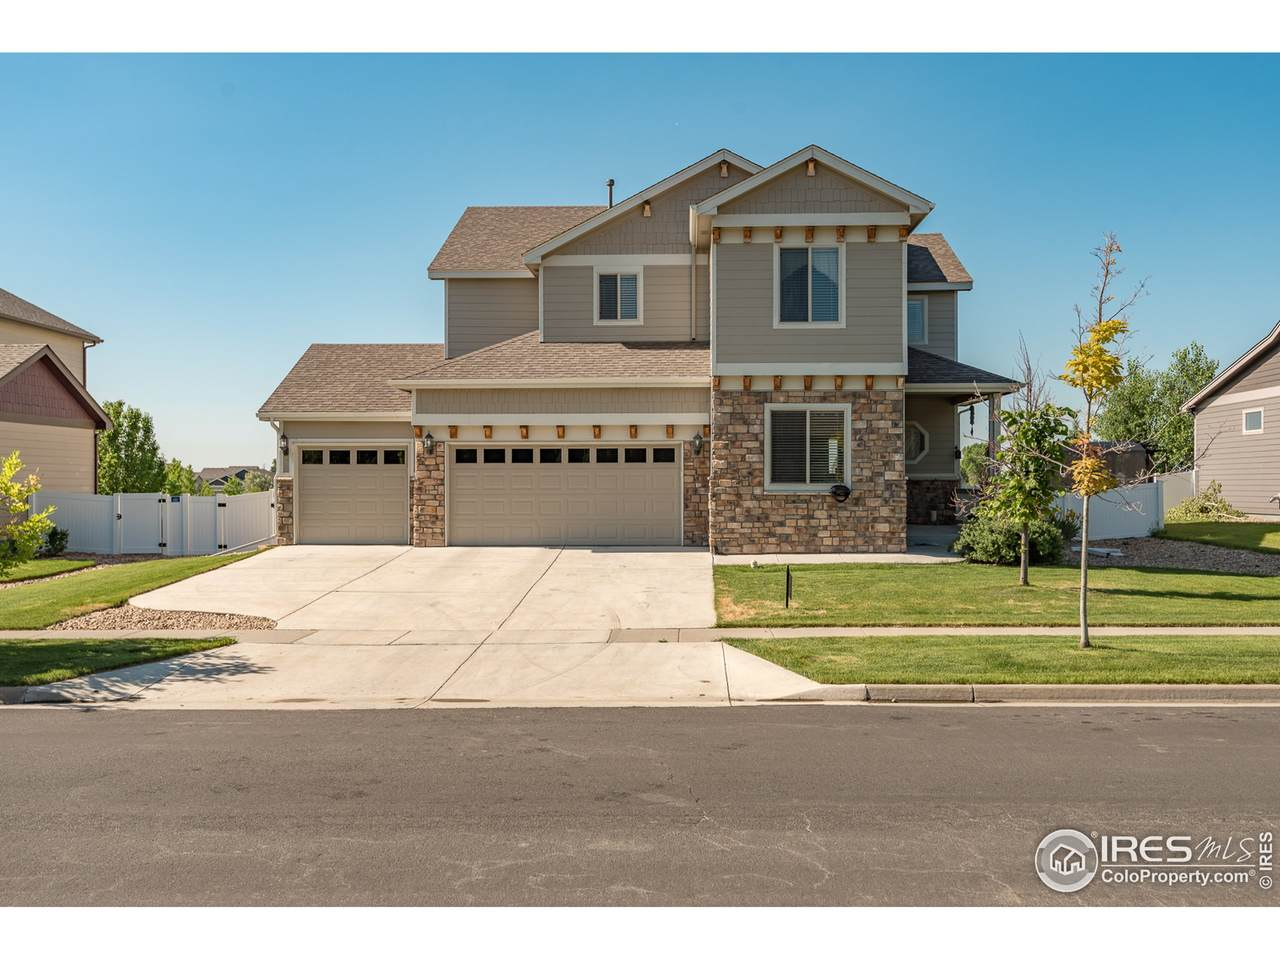 1705 Wales Dr - Photo 1